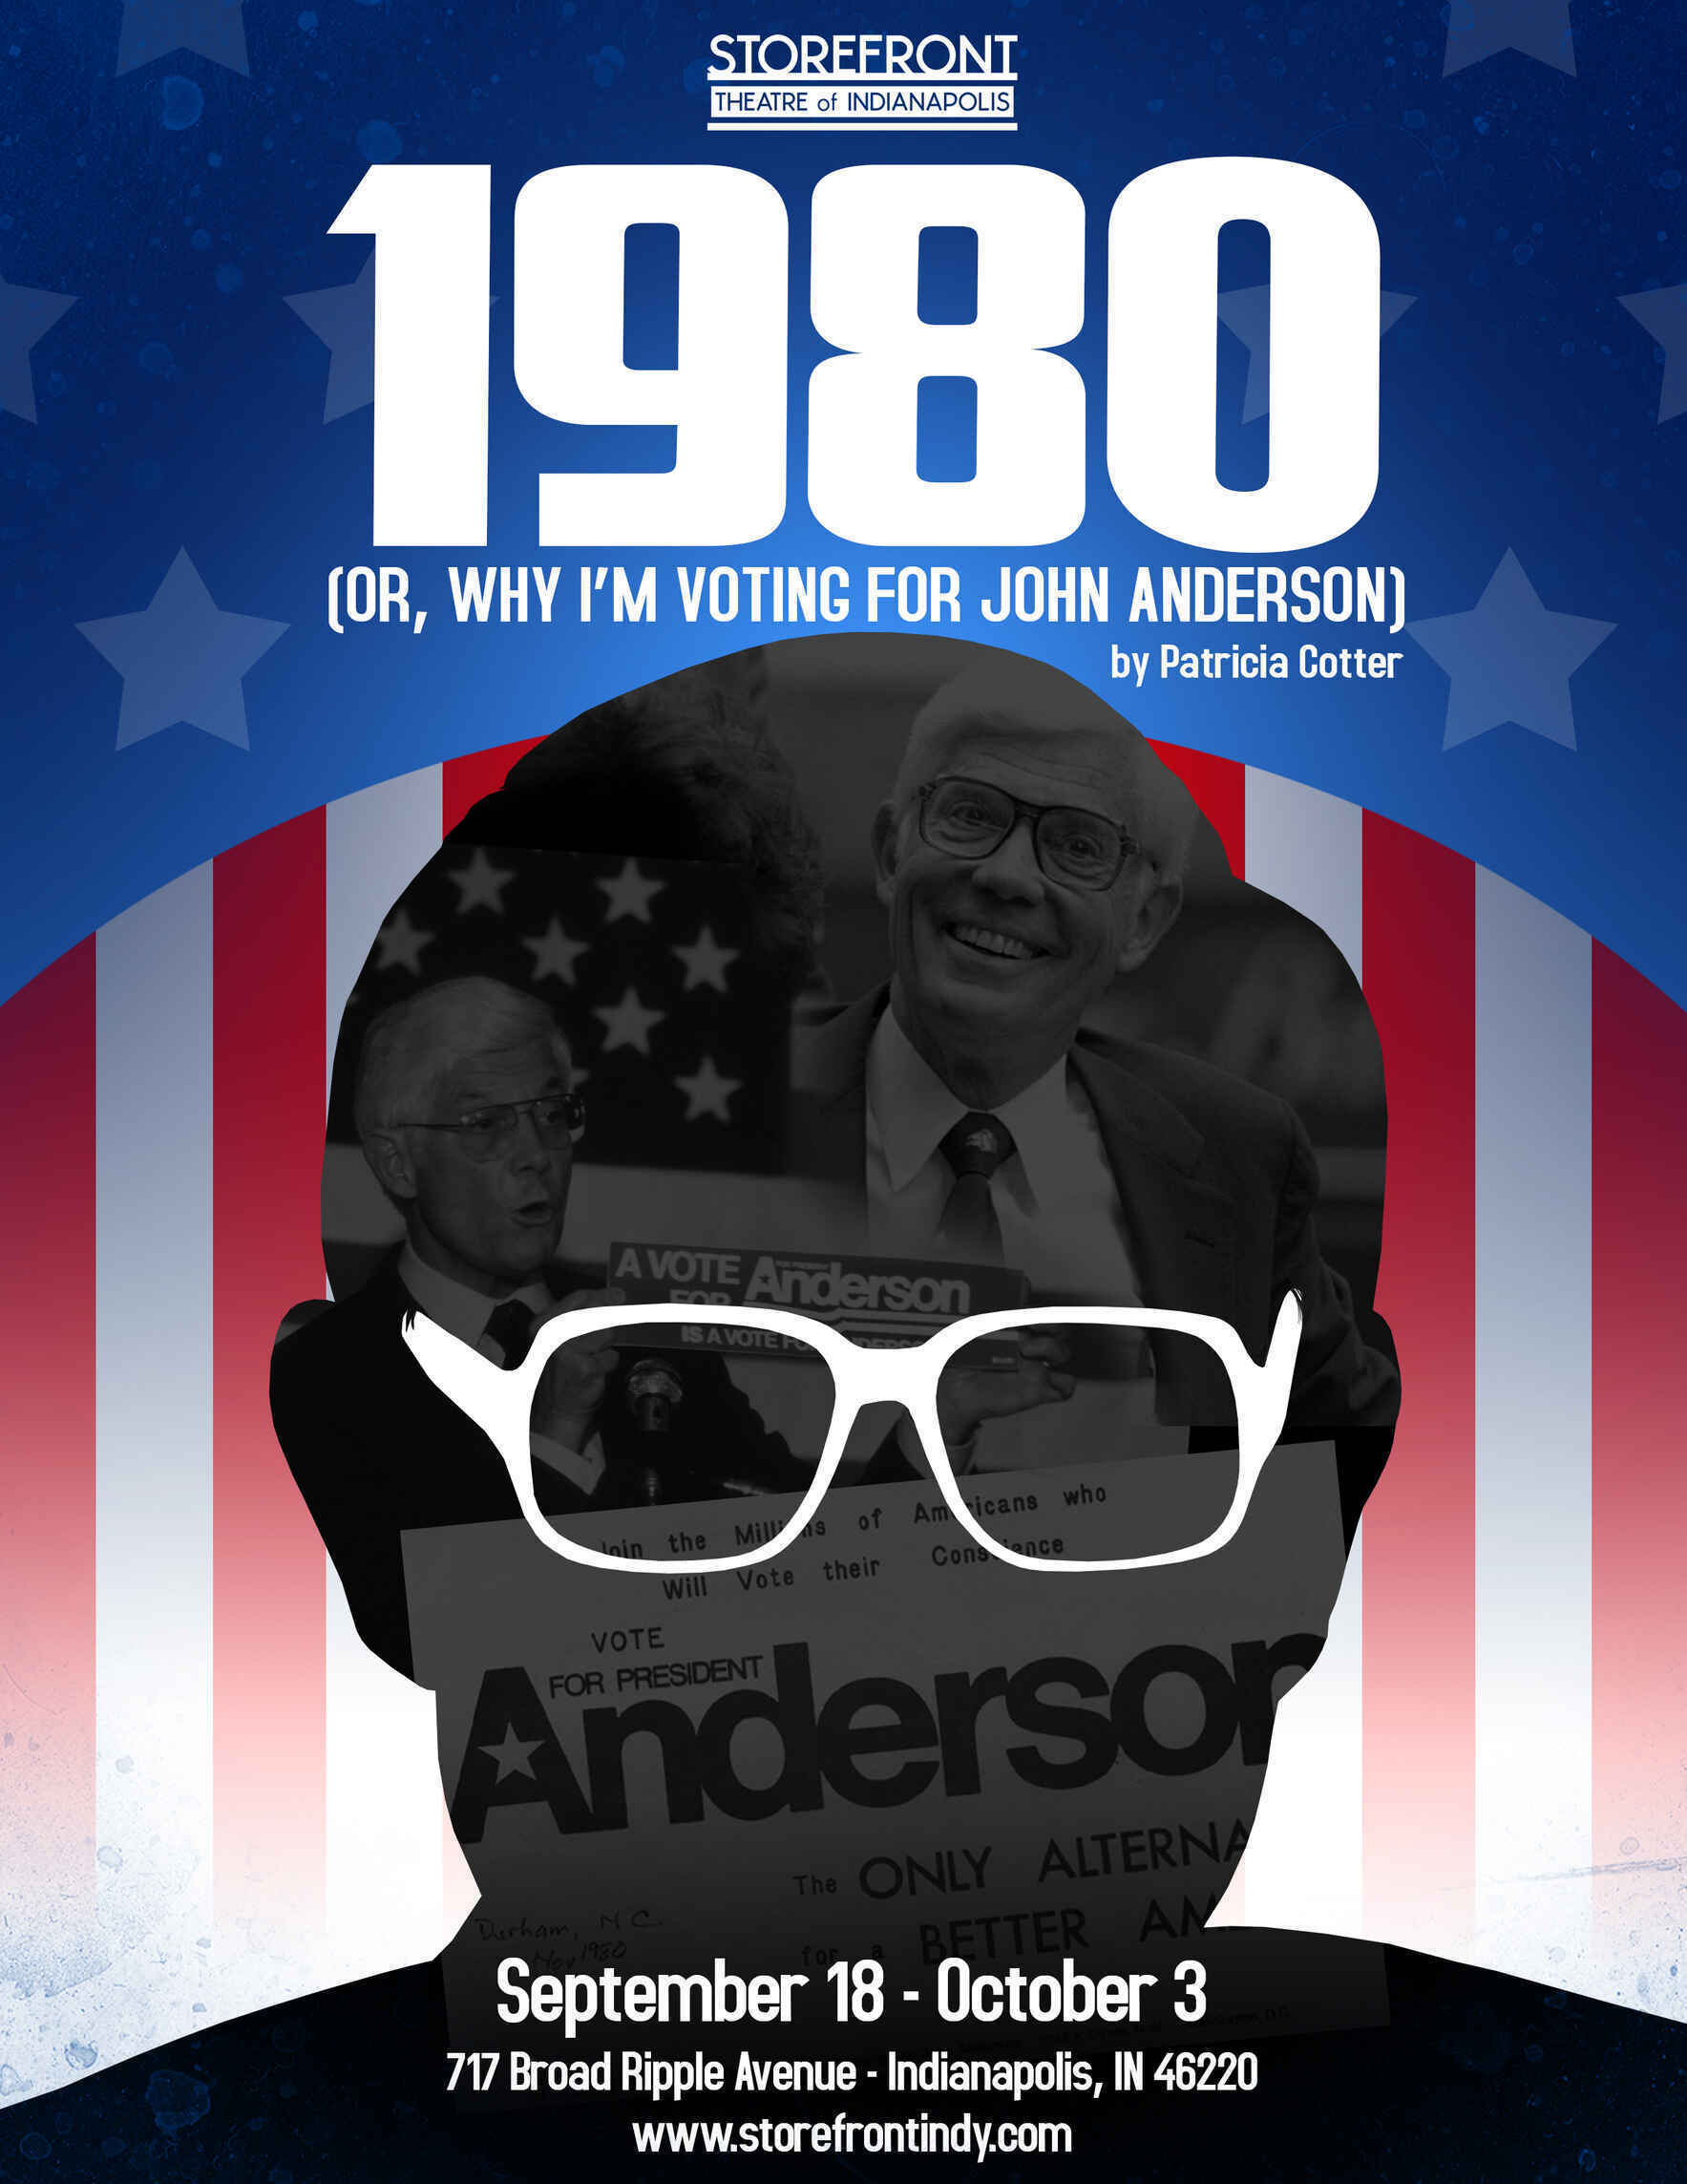 1980 (OR WHY I'M VOTING FOR JOHN ANDERSON) image